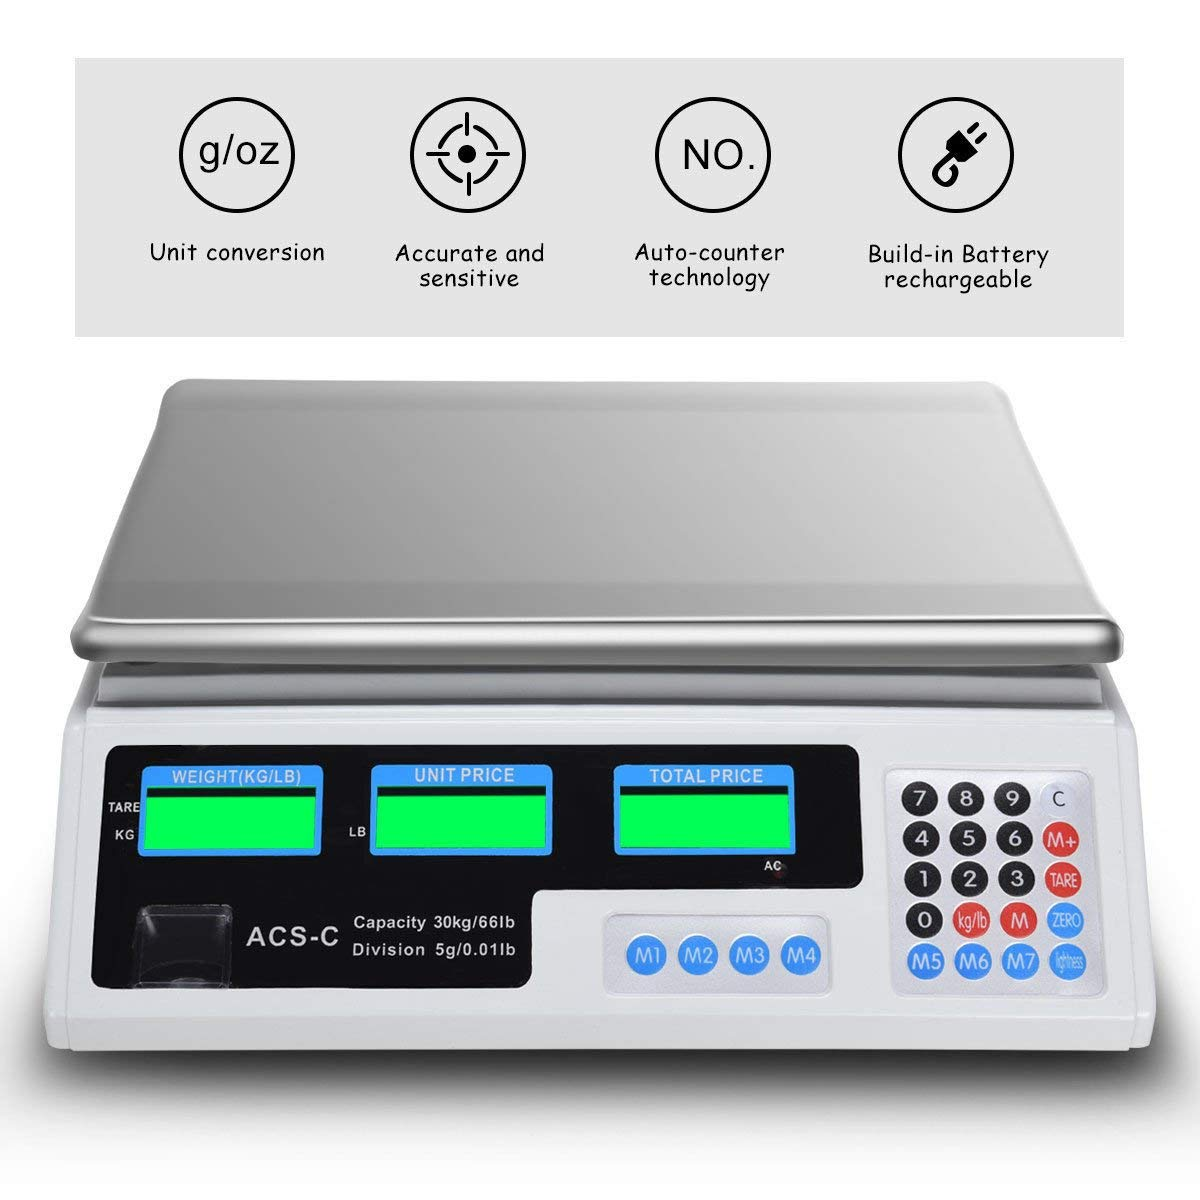 66 LB Digital Scale Price Computing Deli Electronic Counting Weight by Goplus